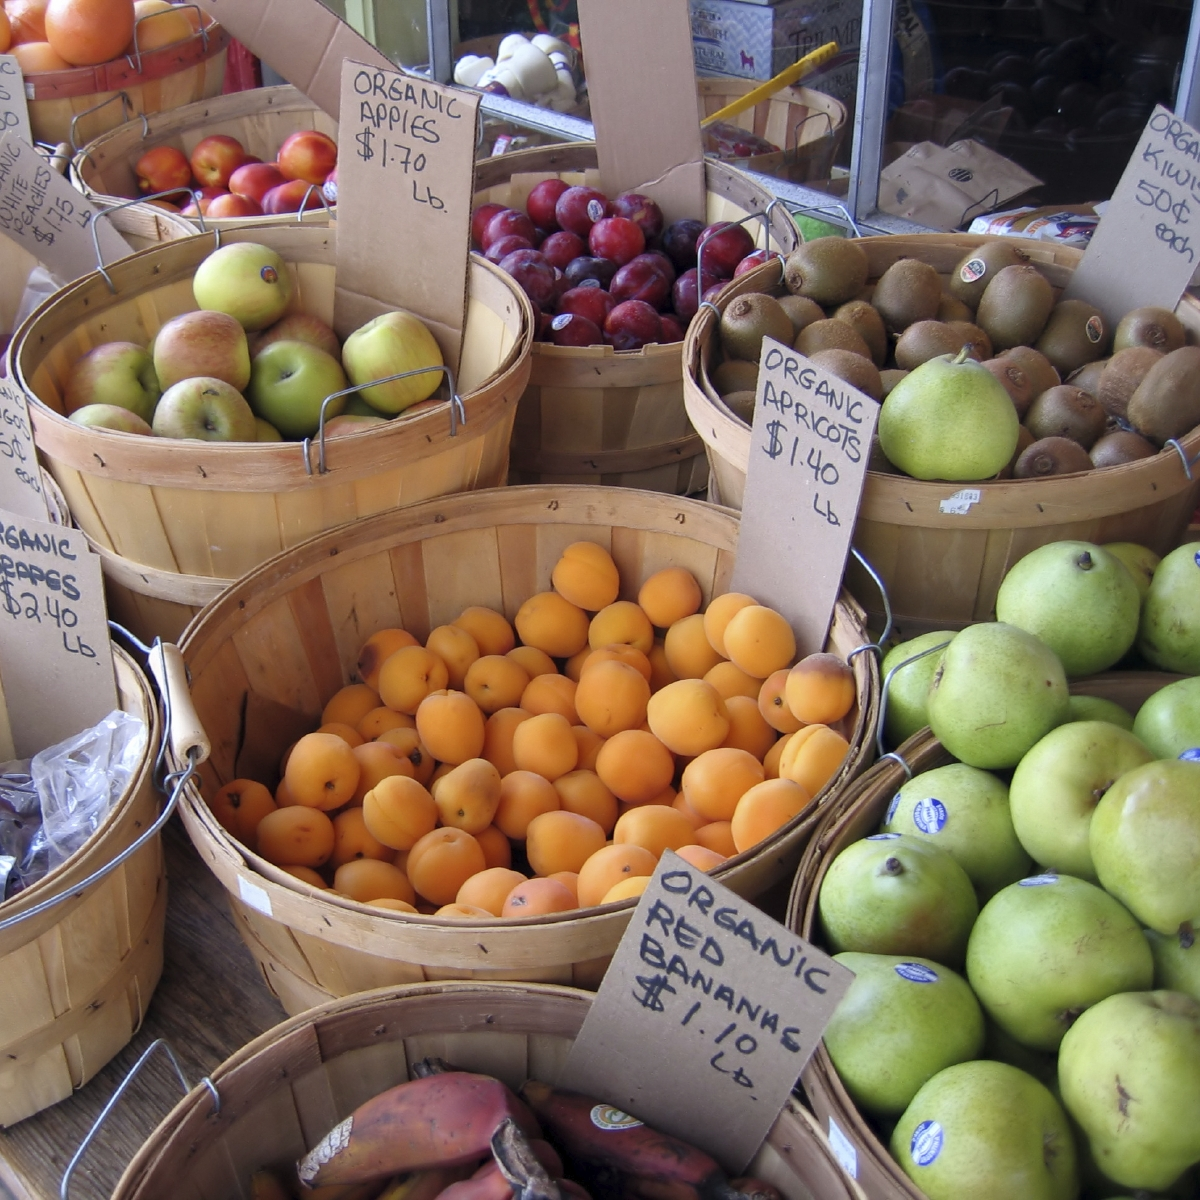 Silverlake Farmer's Market / Whole Foods 365 / Trader Joe's / Yummy.com / Gelson's Market / Leticia's Mini Market / Cheese Store of Silverlake -